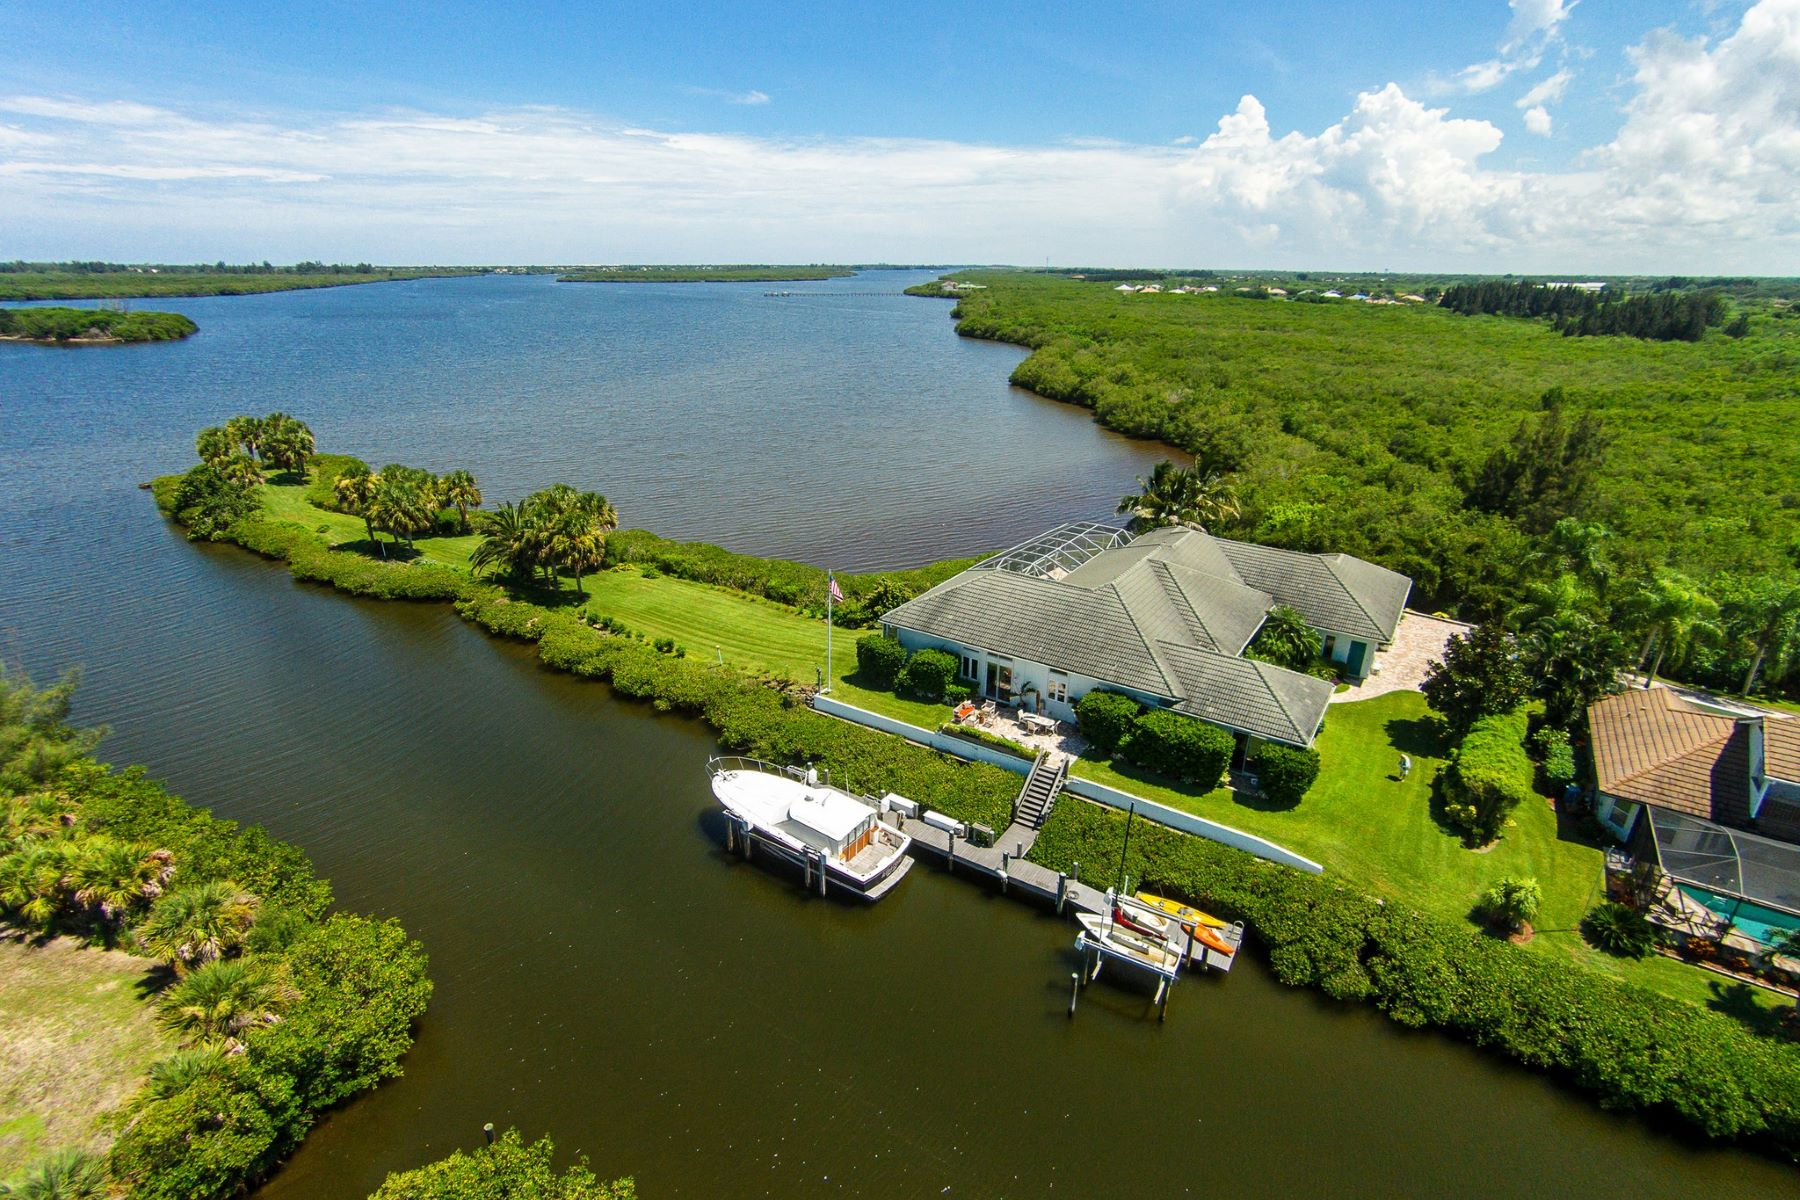 Casa Unifamiliar por un Venta en Riverfront Point Lot 3490 Marsha Lane Vero Beach, Florida, 32967 Estados Unidos